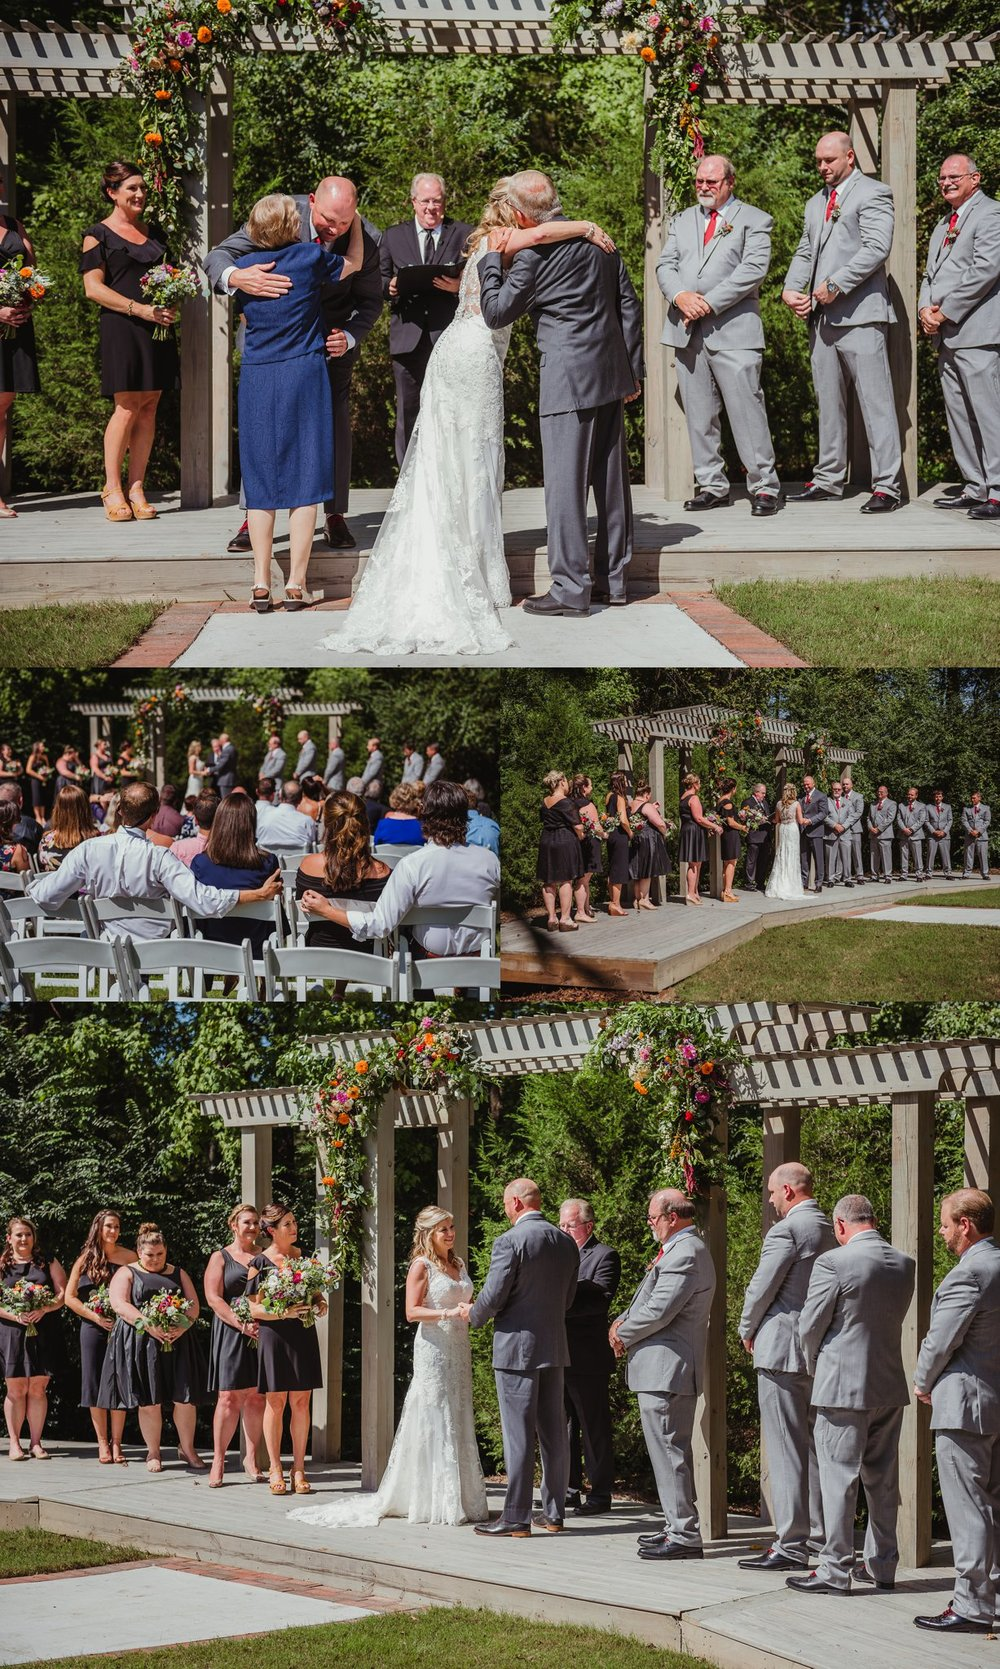 The bride and groom exchanged vows during their wedding ceremony at Cedar Grove Acres near North Carolina, photos by Rose Trail Images.